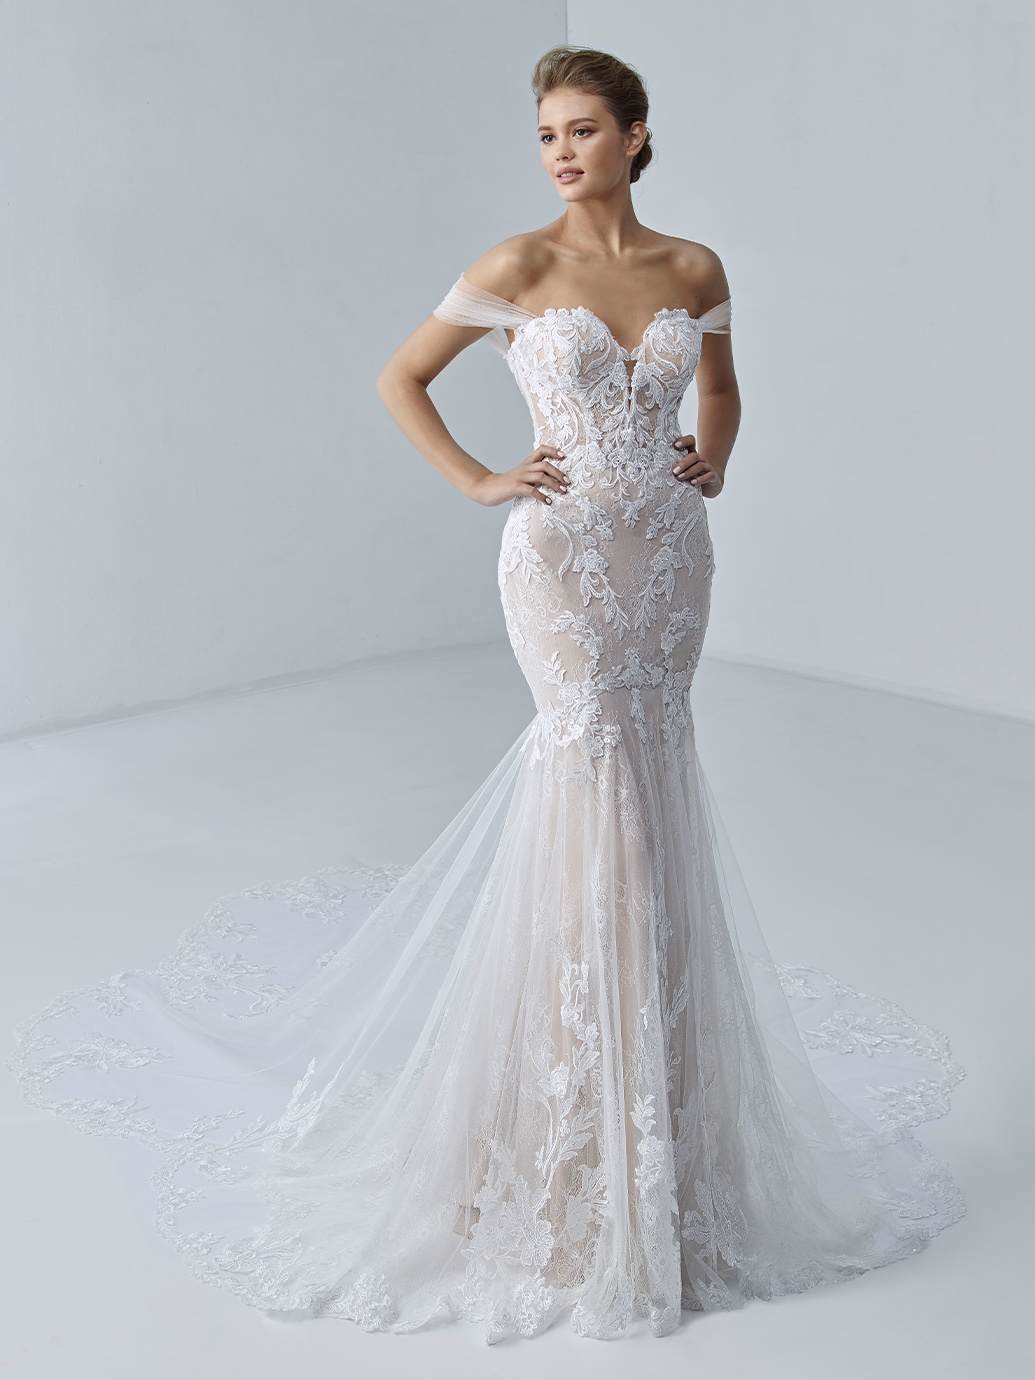 étoile-by-enzoani-2021-Dress-Finder-Evangeline